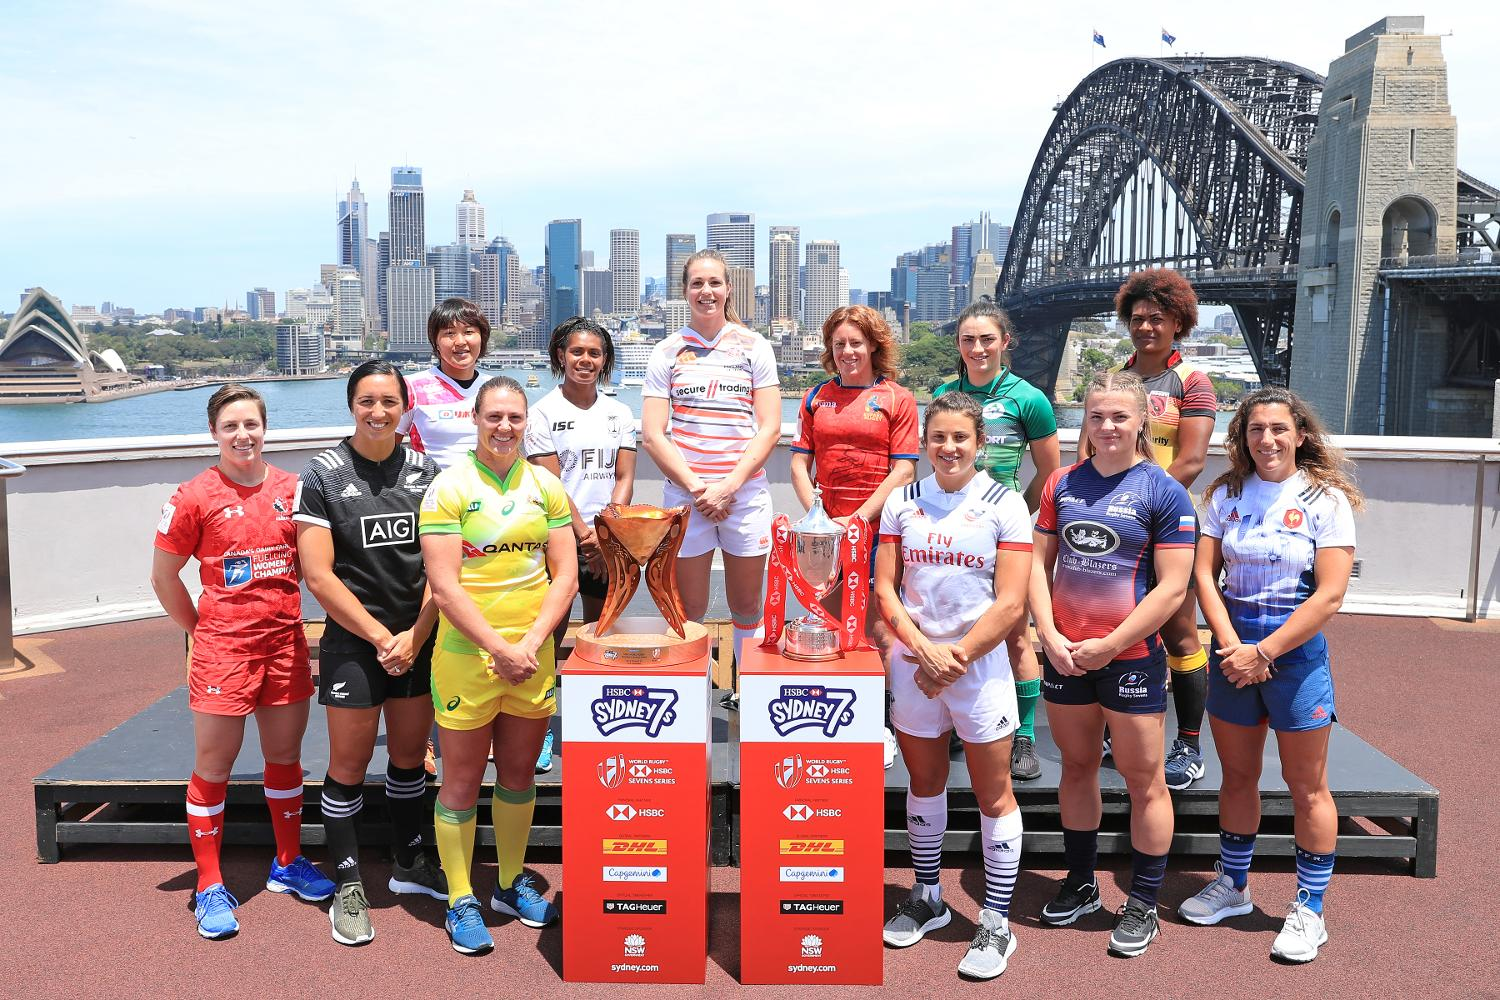 Sydney sevens captains photo